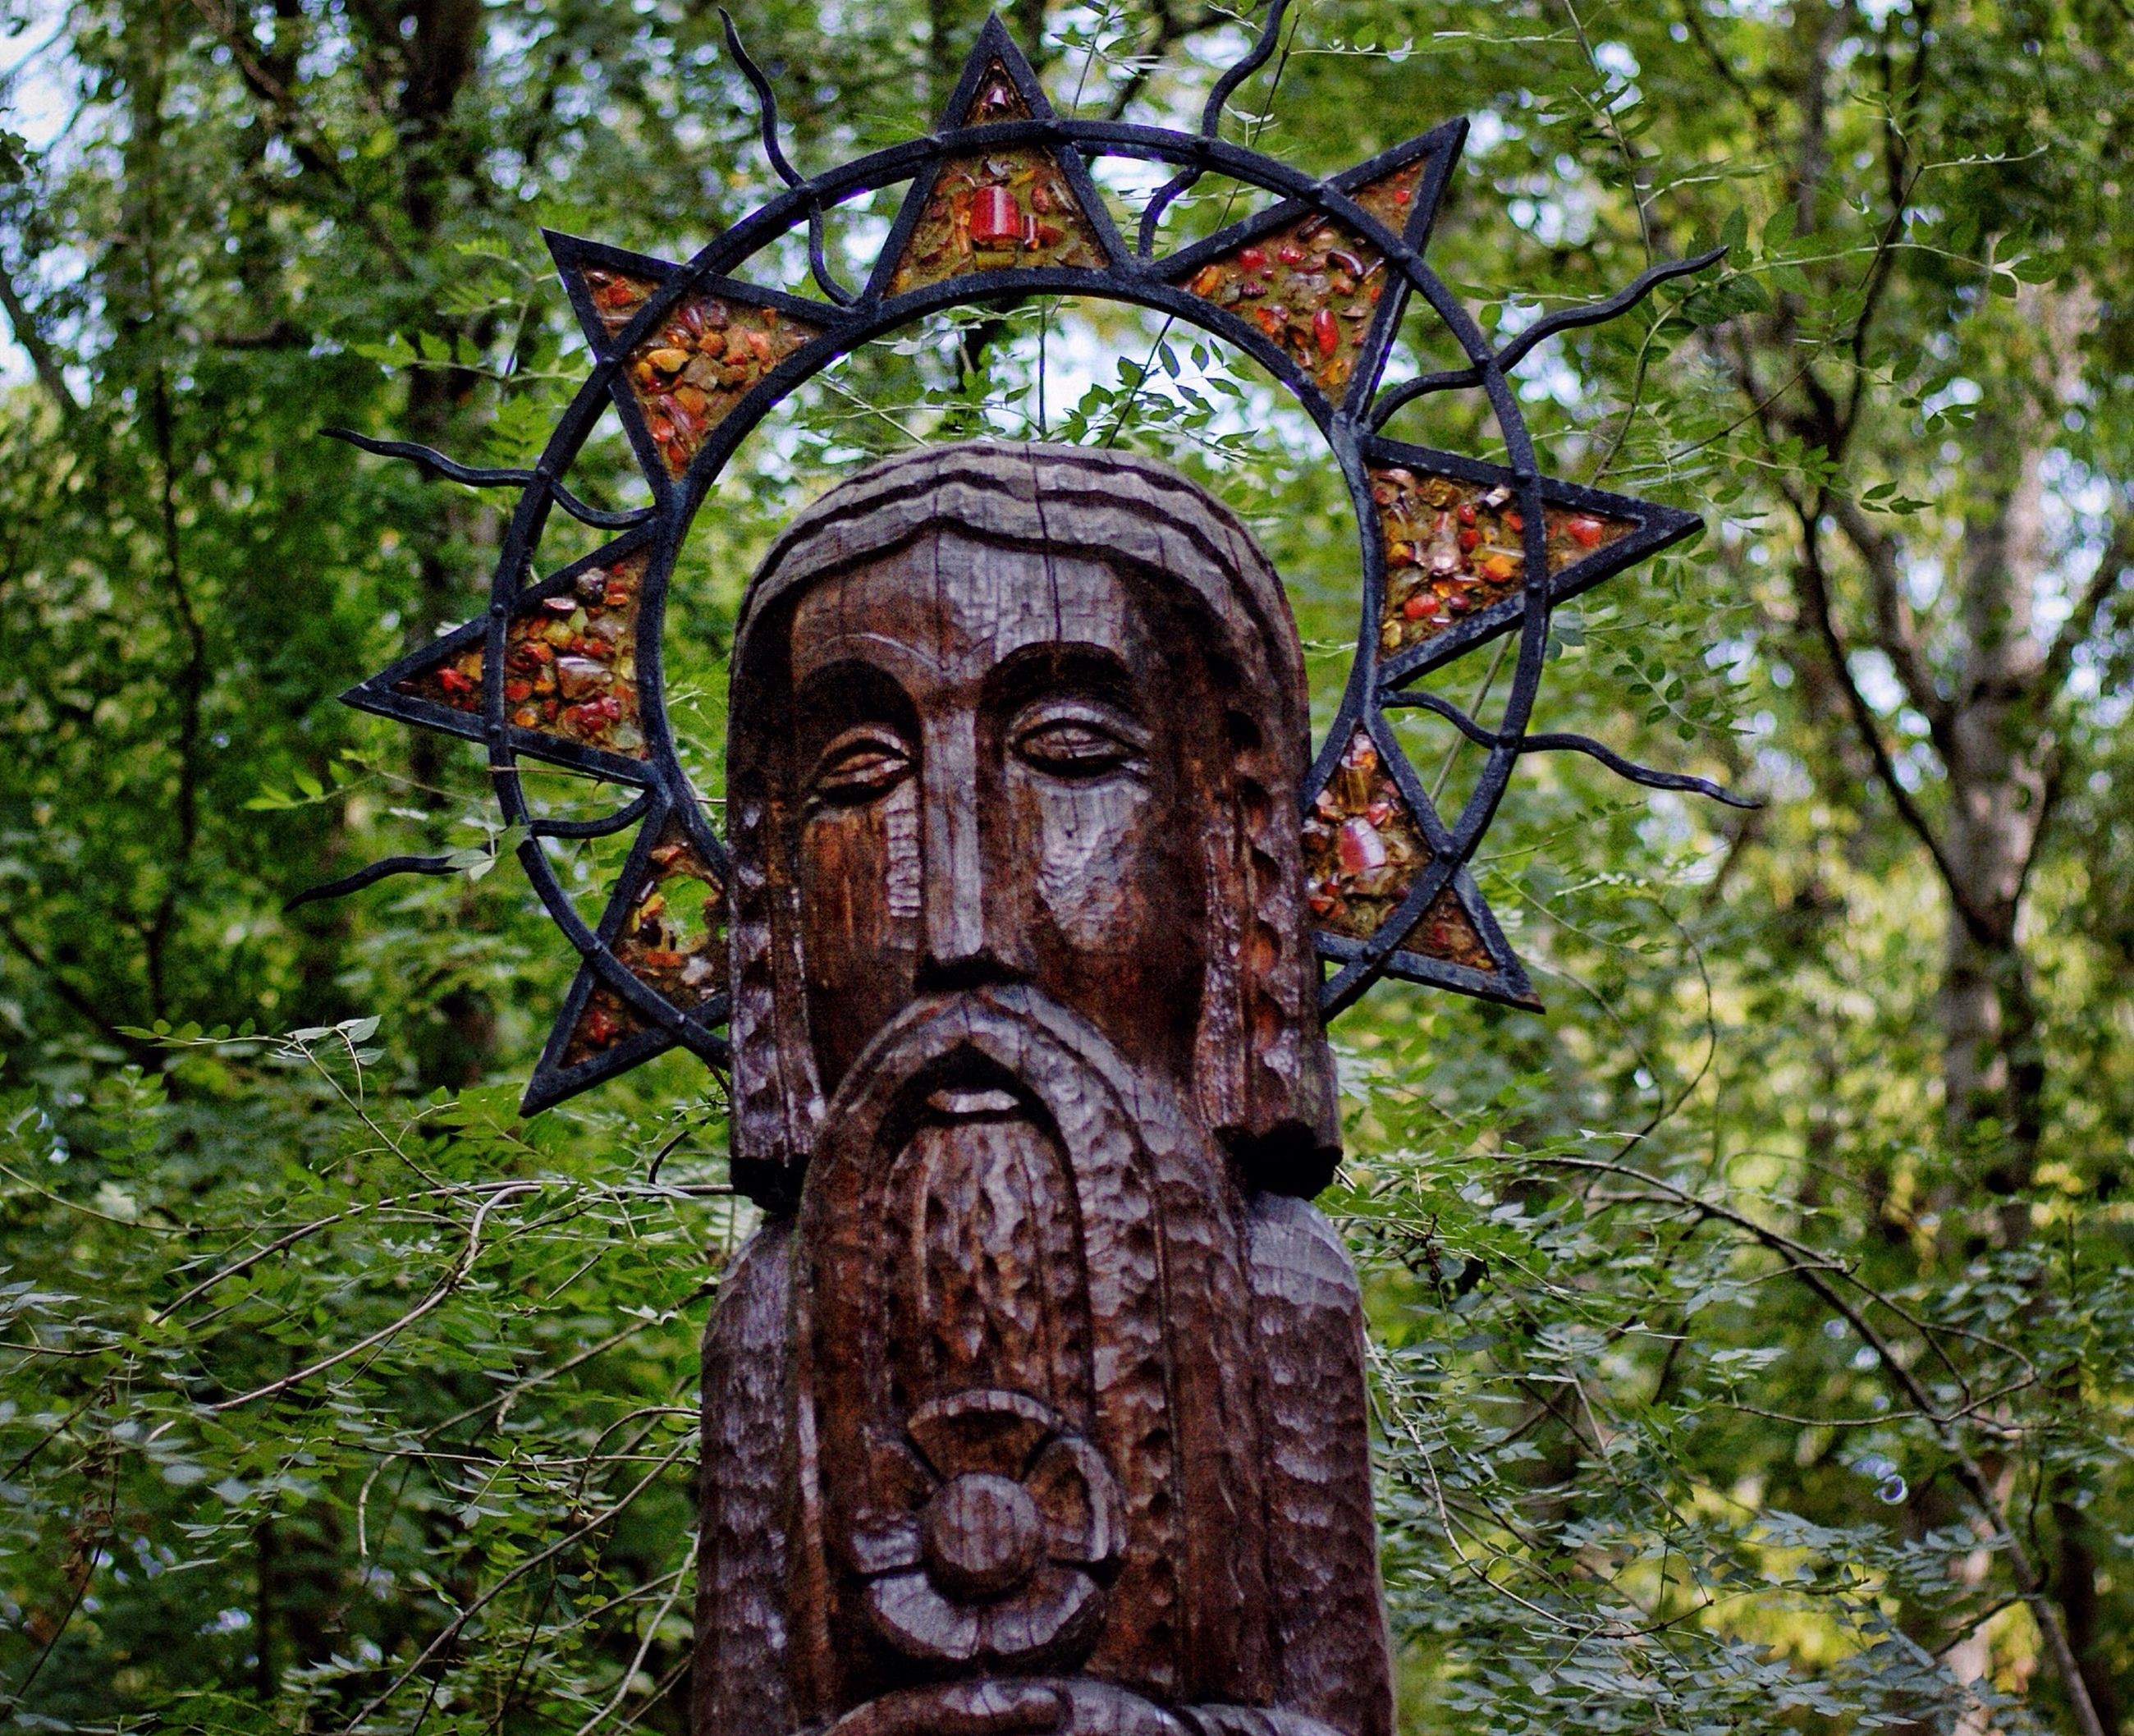 art and craft, human representation, statue, art, sculpture, creativity, tree, carving - craft product, religion, spirituality, low angle view, place of worship, no people, day, old, outdoors, stone material